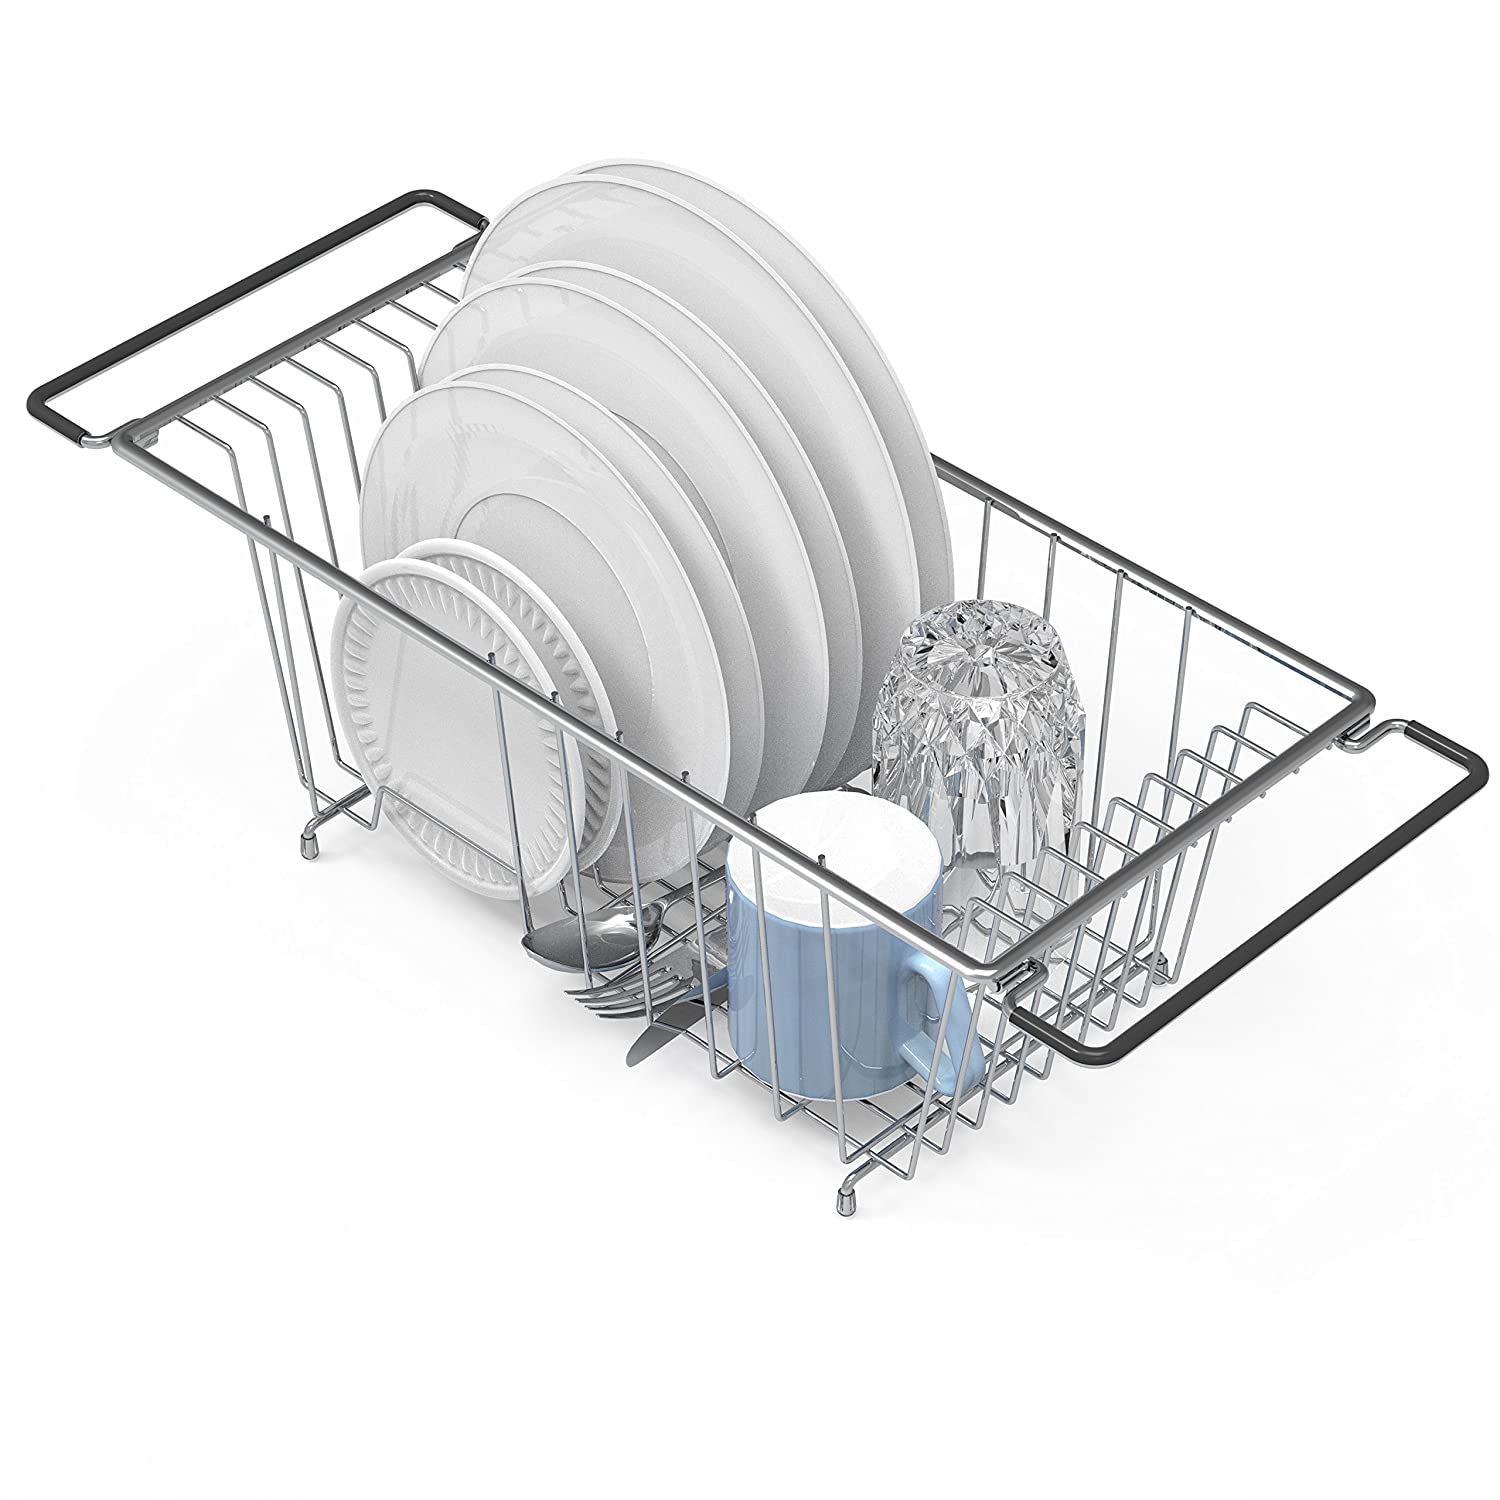 Simple Houseware 1-Tier Over Sink Countertop Dish Drainer Drying Rack